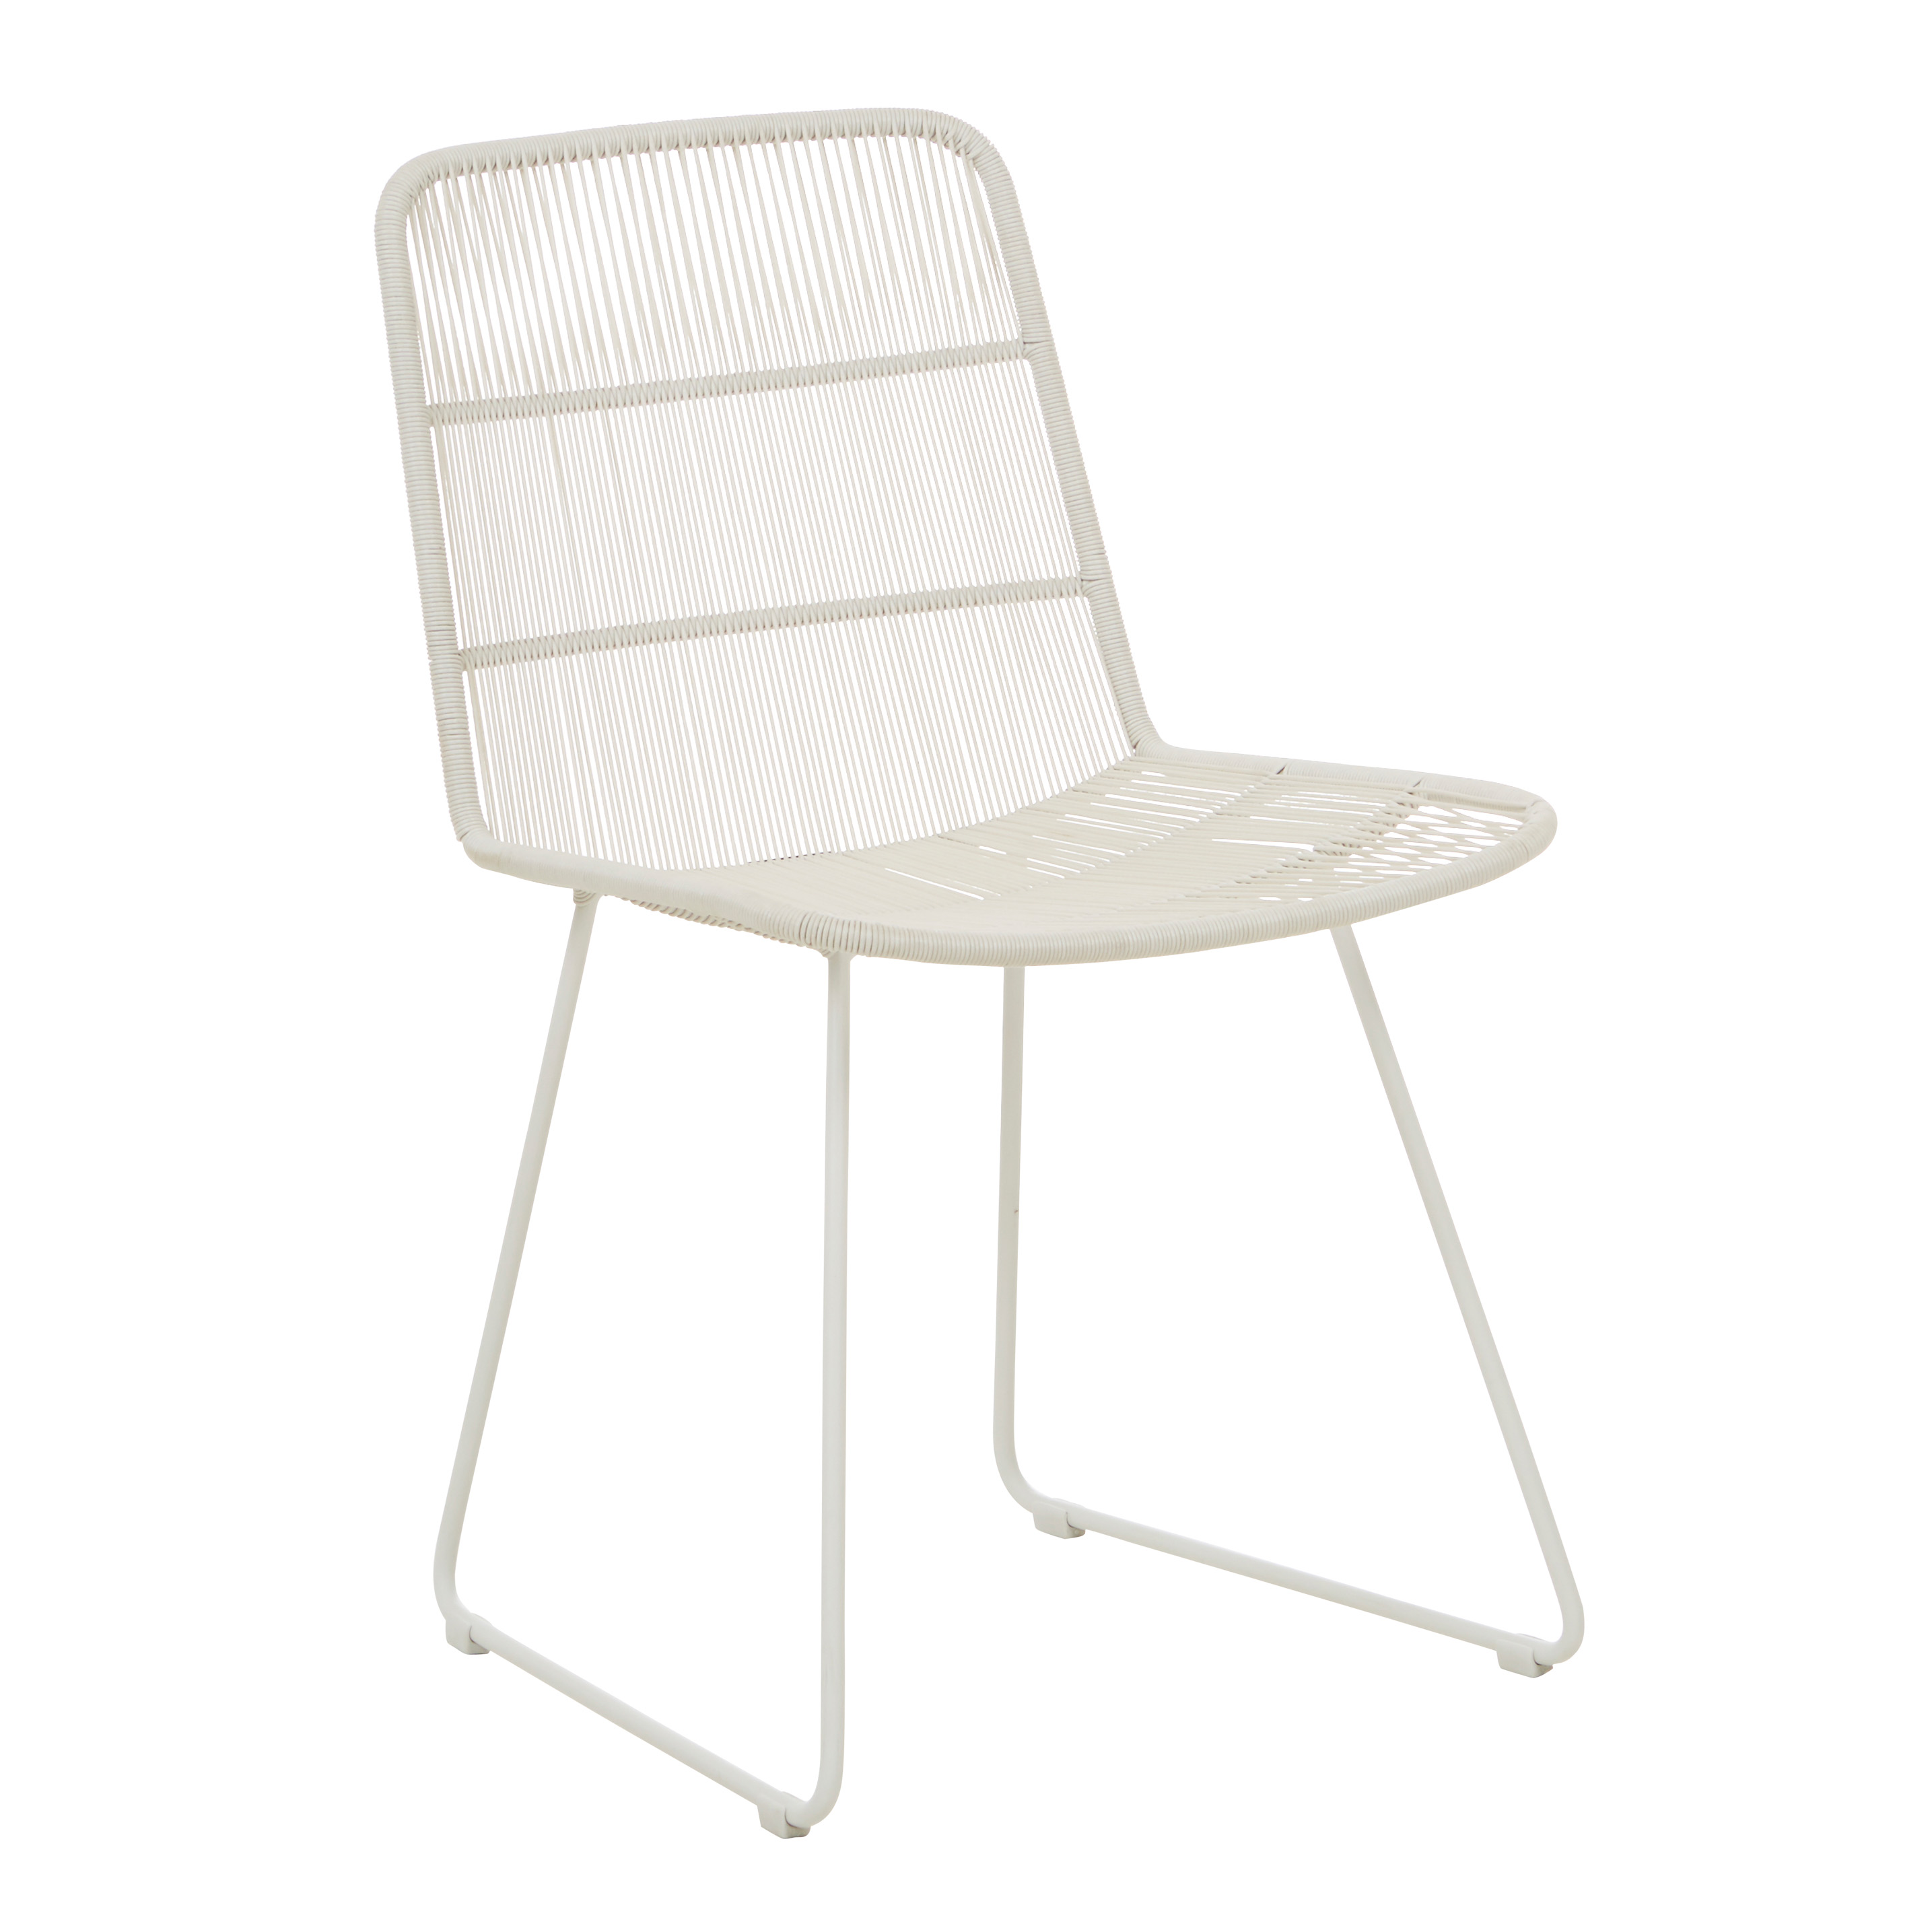 Furniture Hero-Images Dining-Chairs-Benches-and-Stools granada-sleigh-dining-chair-03